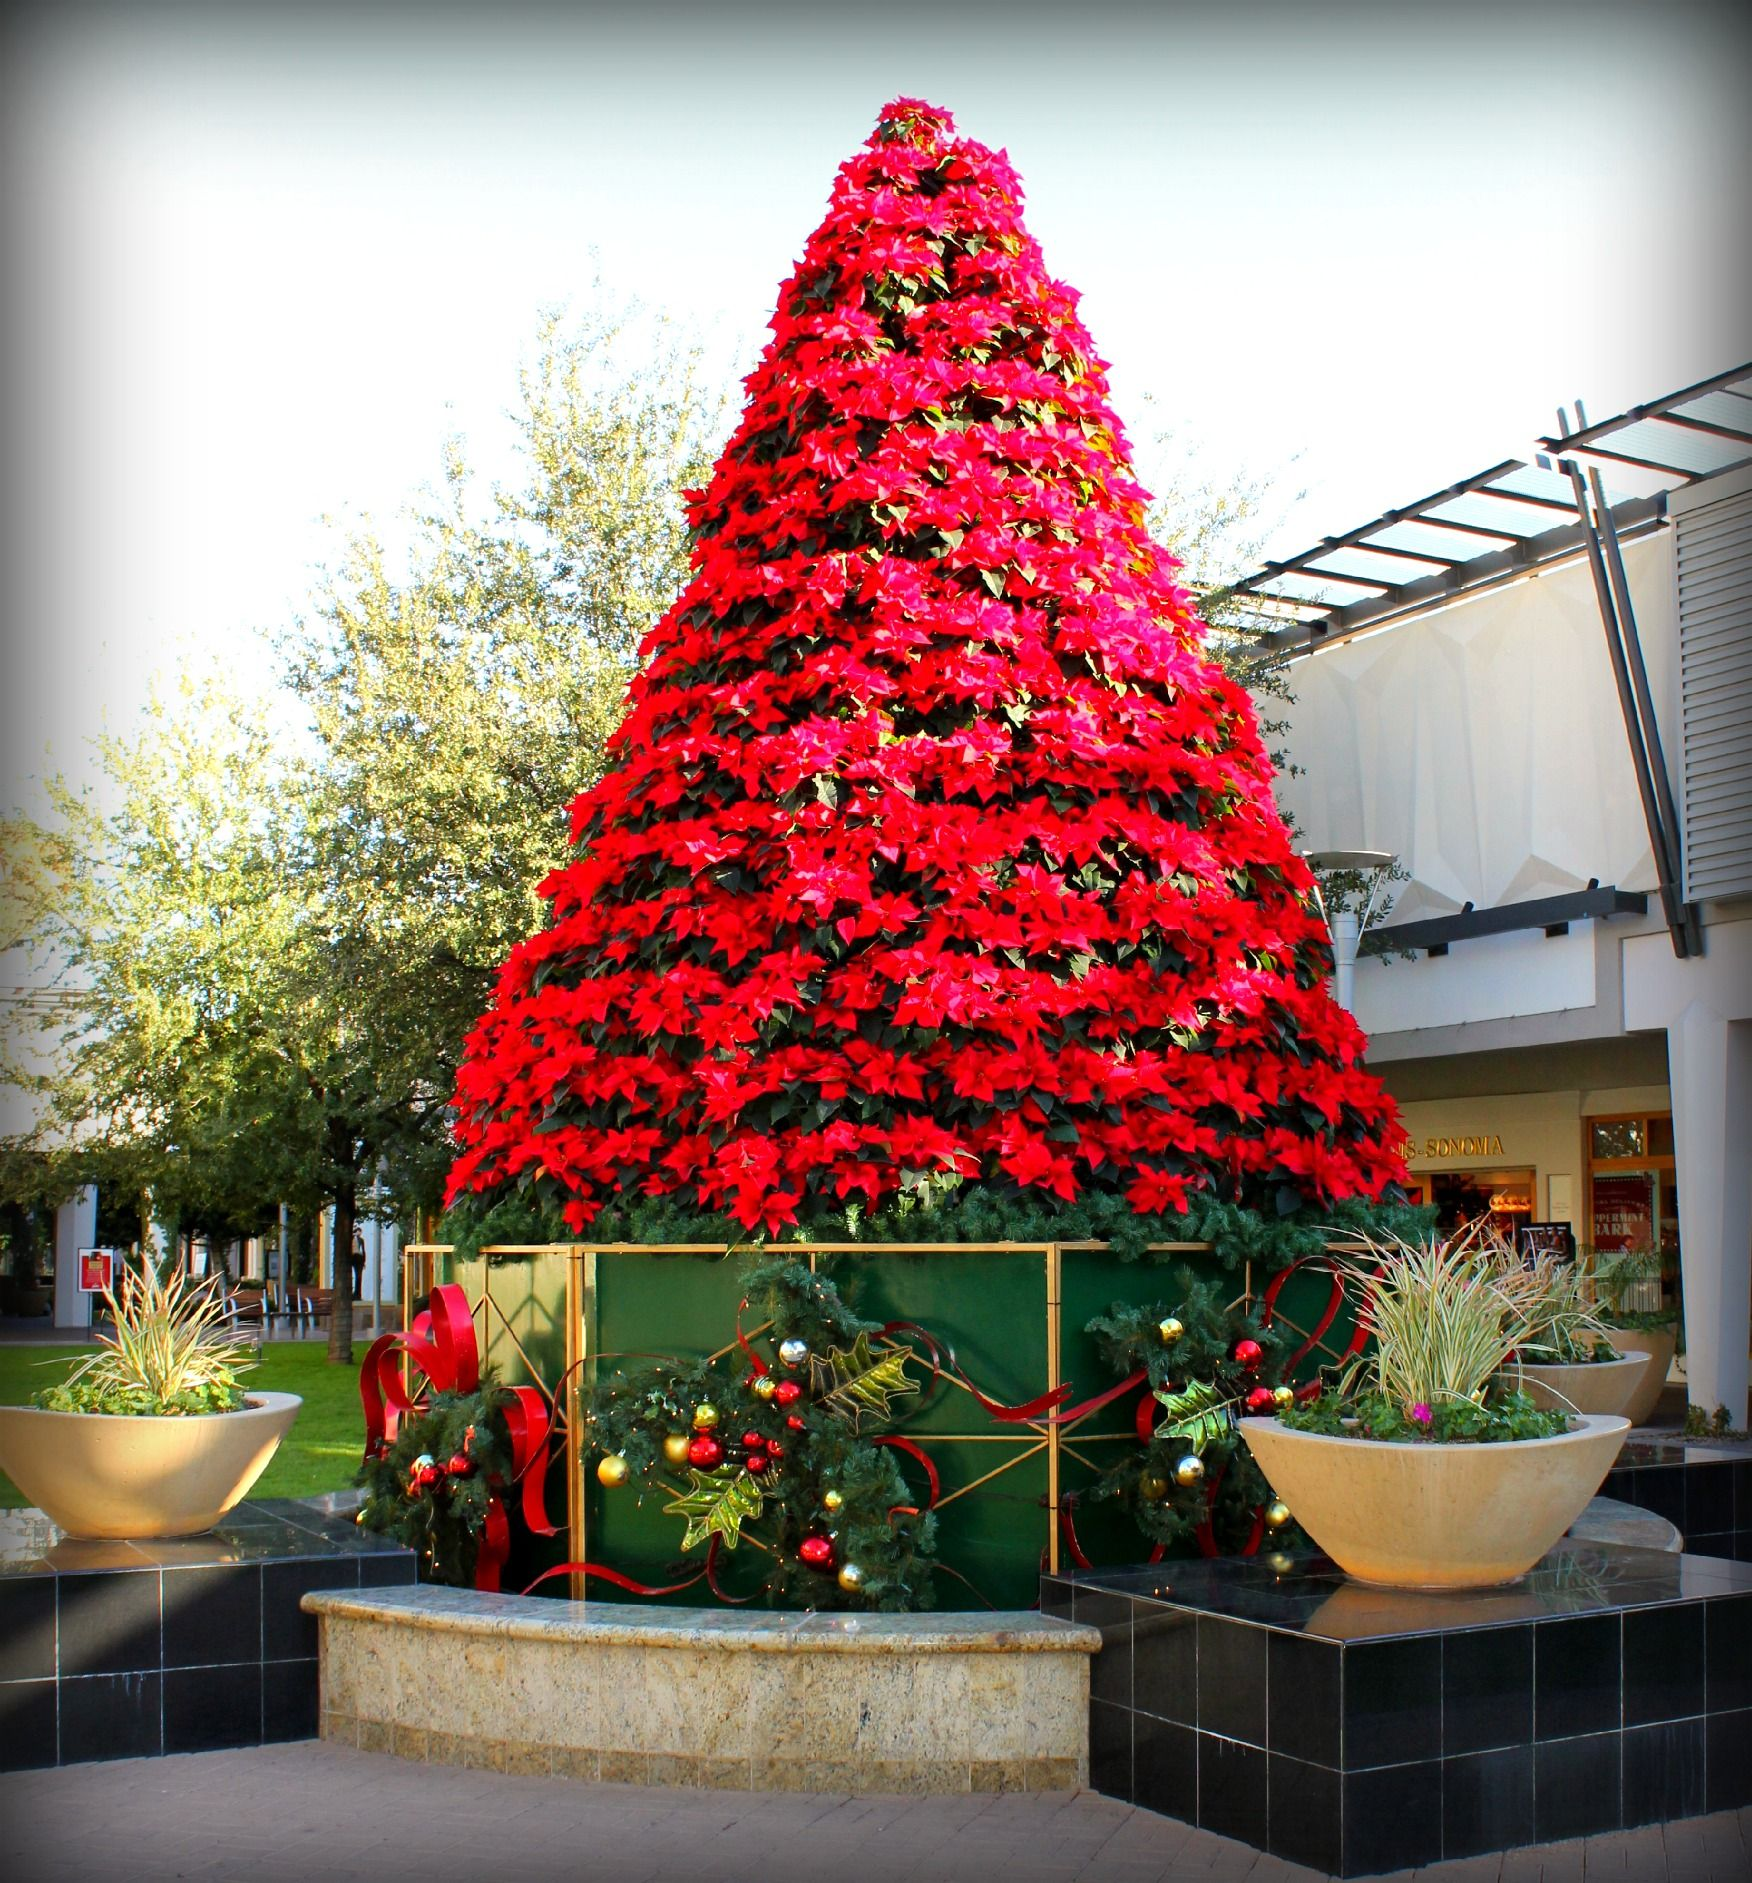 The Poinsettia Tree At Biltmore Fashion Park Christmas Flowers Christmas Plants Christmas Light Displays